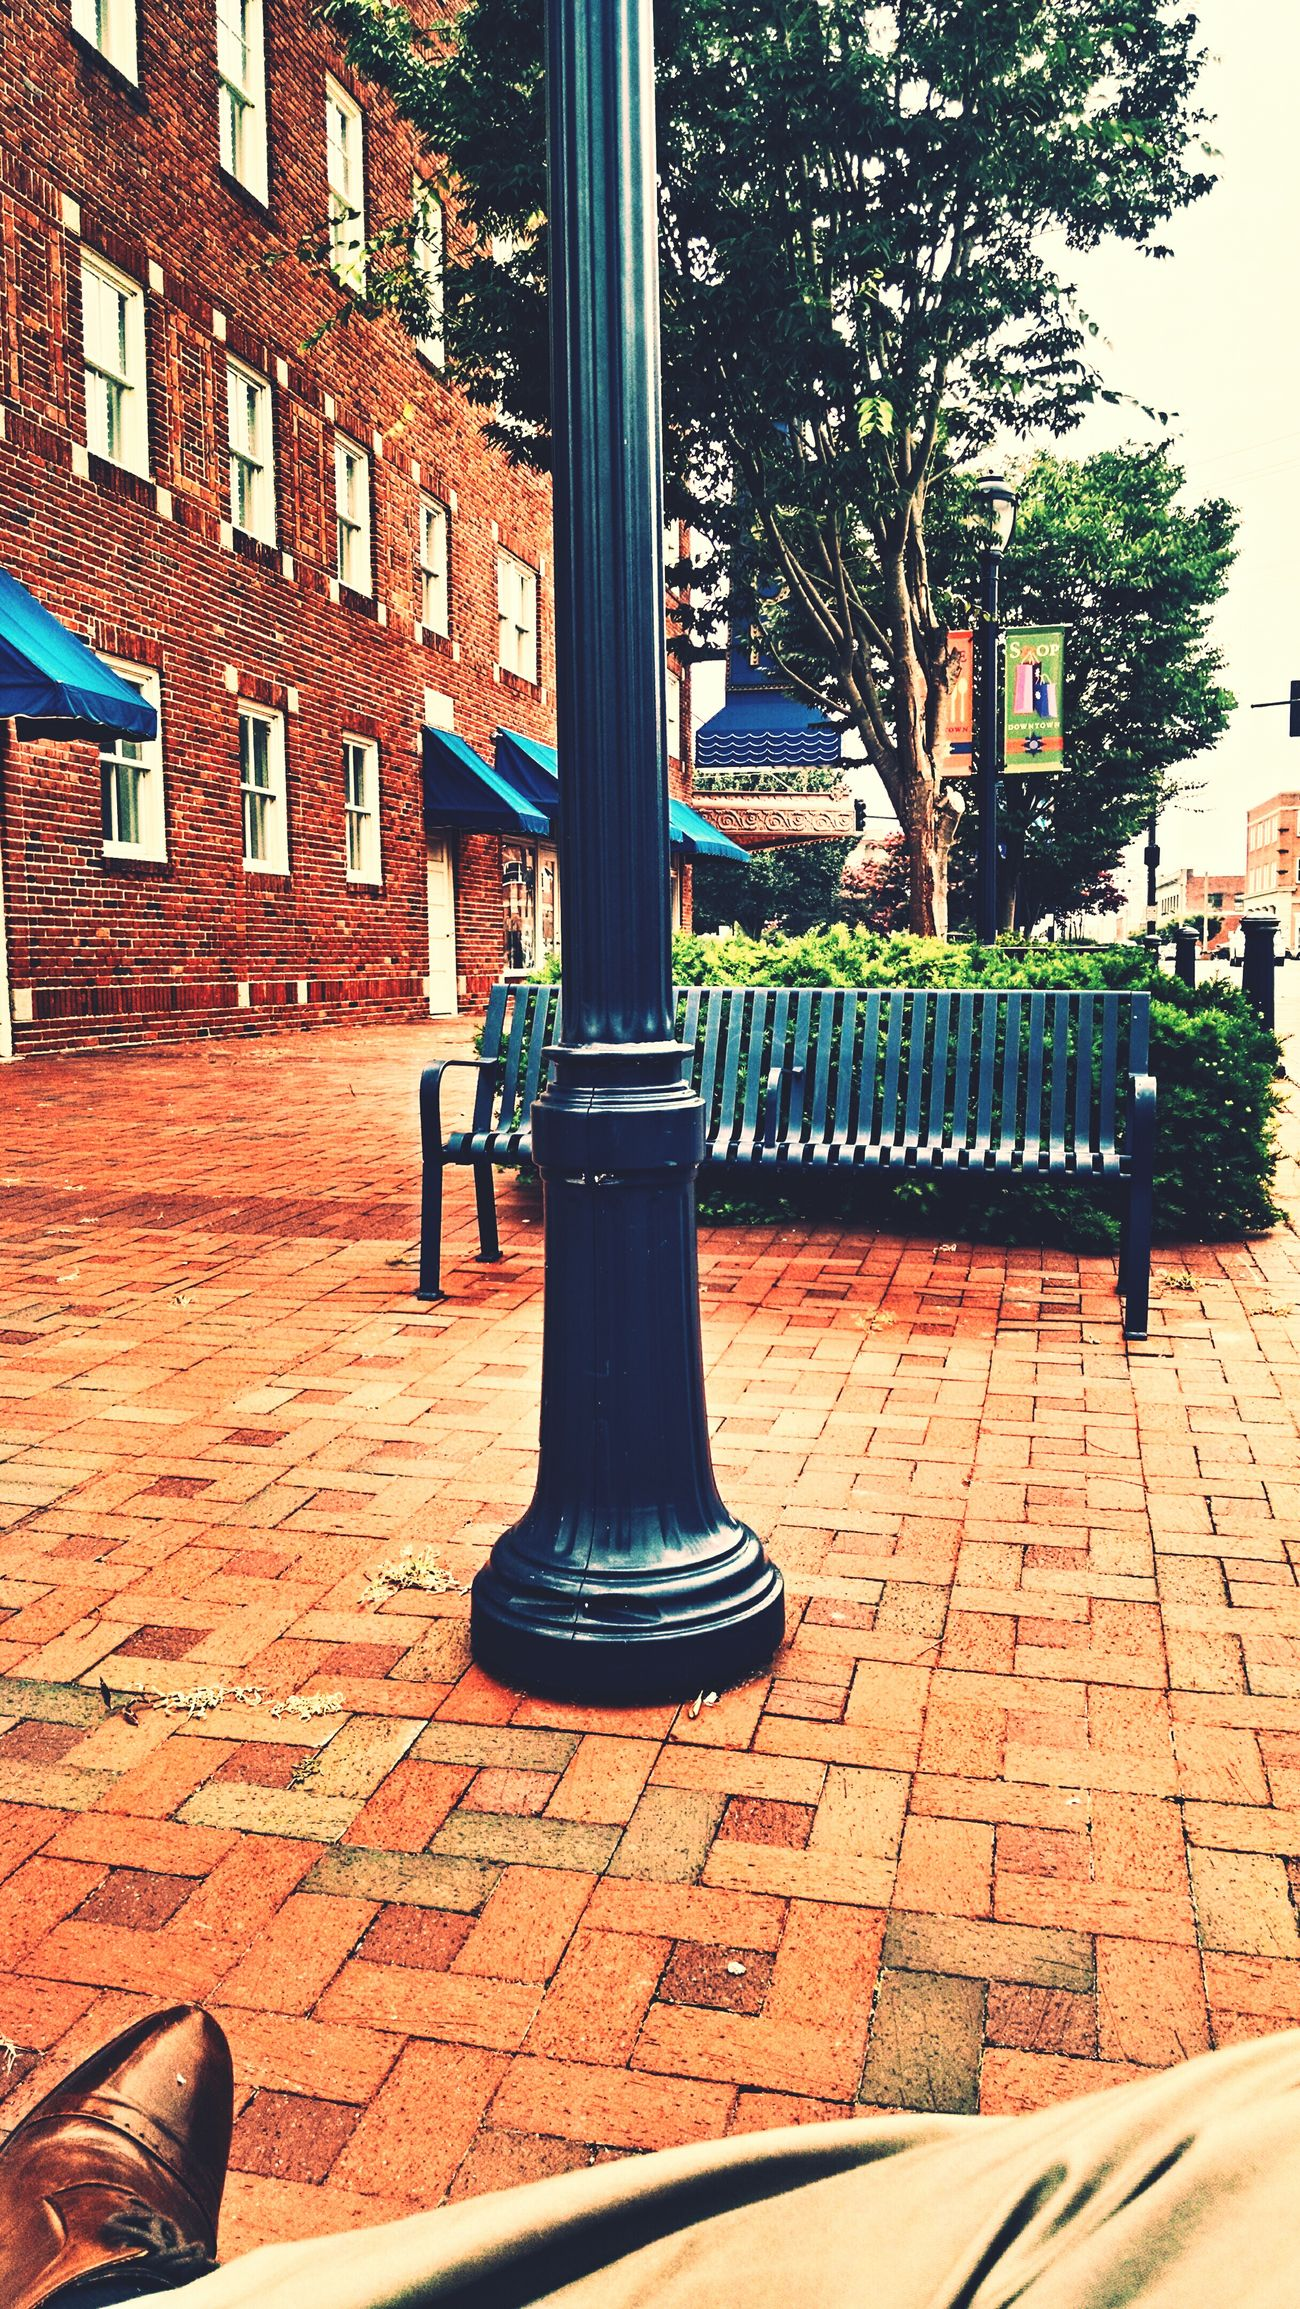 Hey Pole, cheer up and stop looking so Blue ... Bricks Hopewell Virginia Small Town Public Places